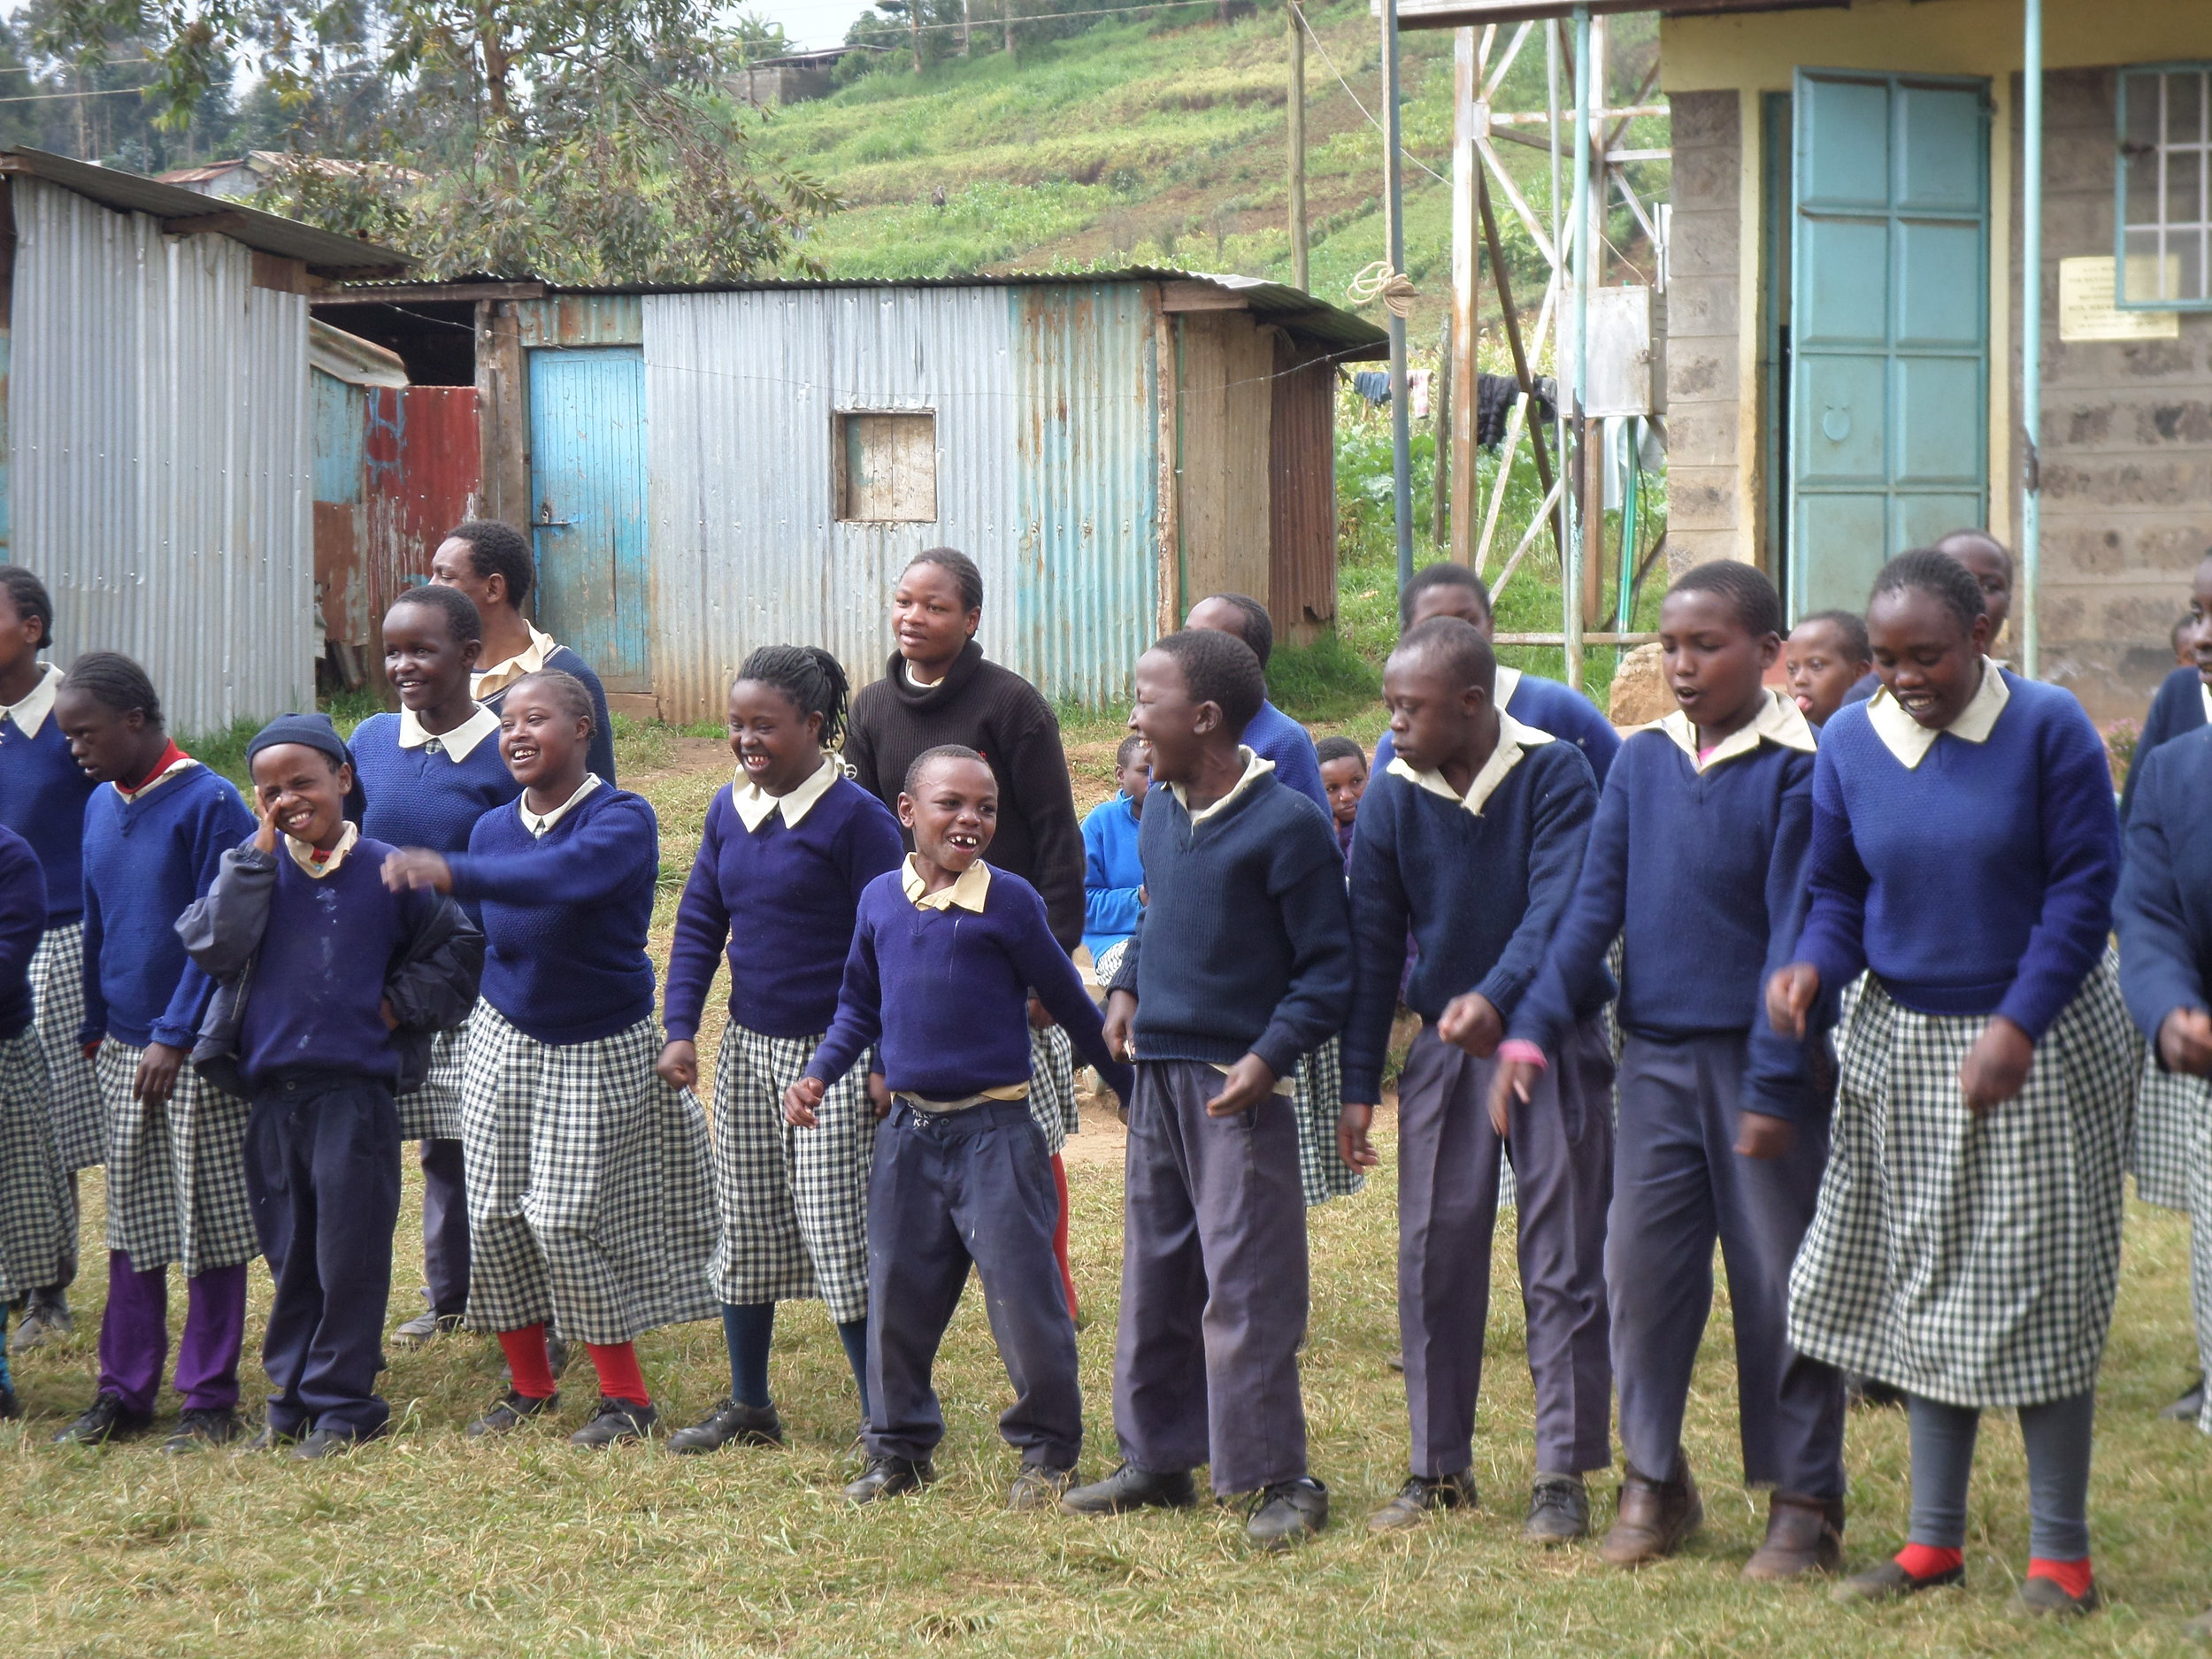 A row of pupils from AIC Mukeu School wearing green uniforms, dancing on grass outside school buildings.